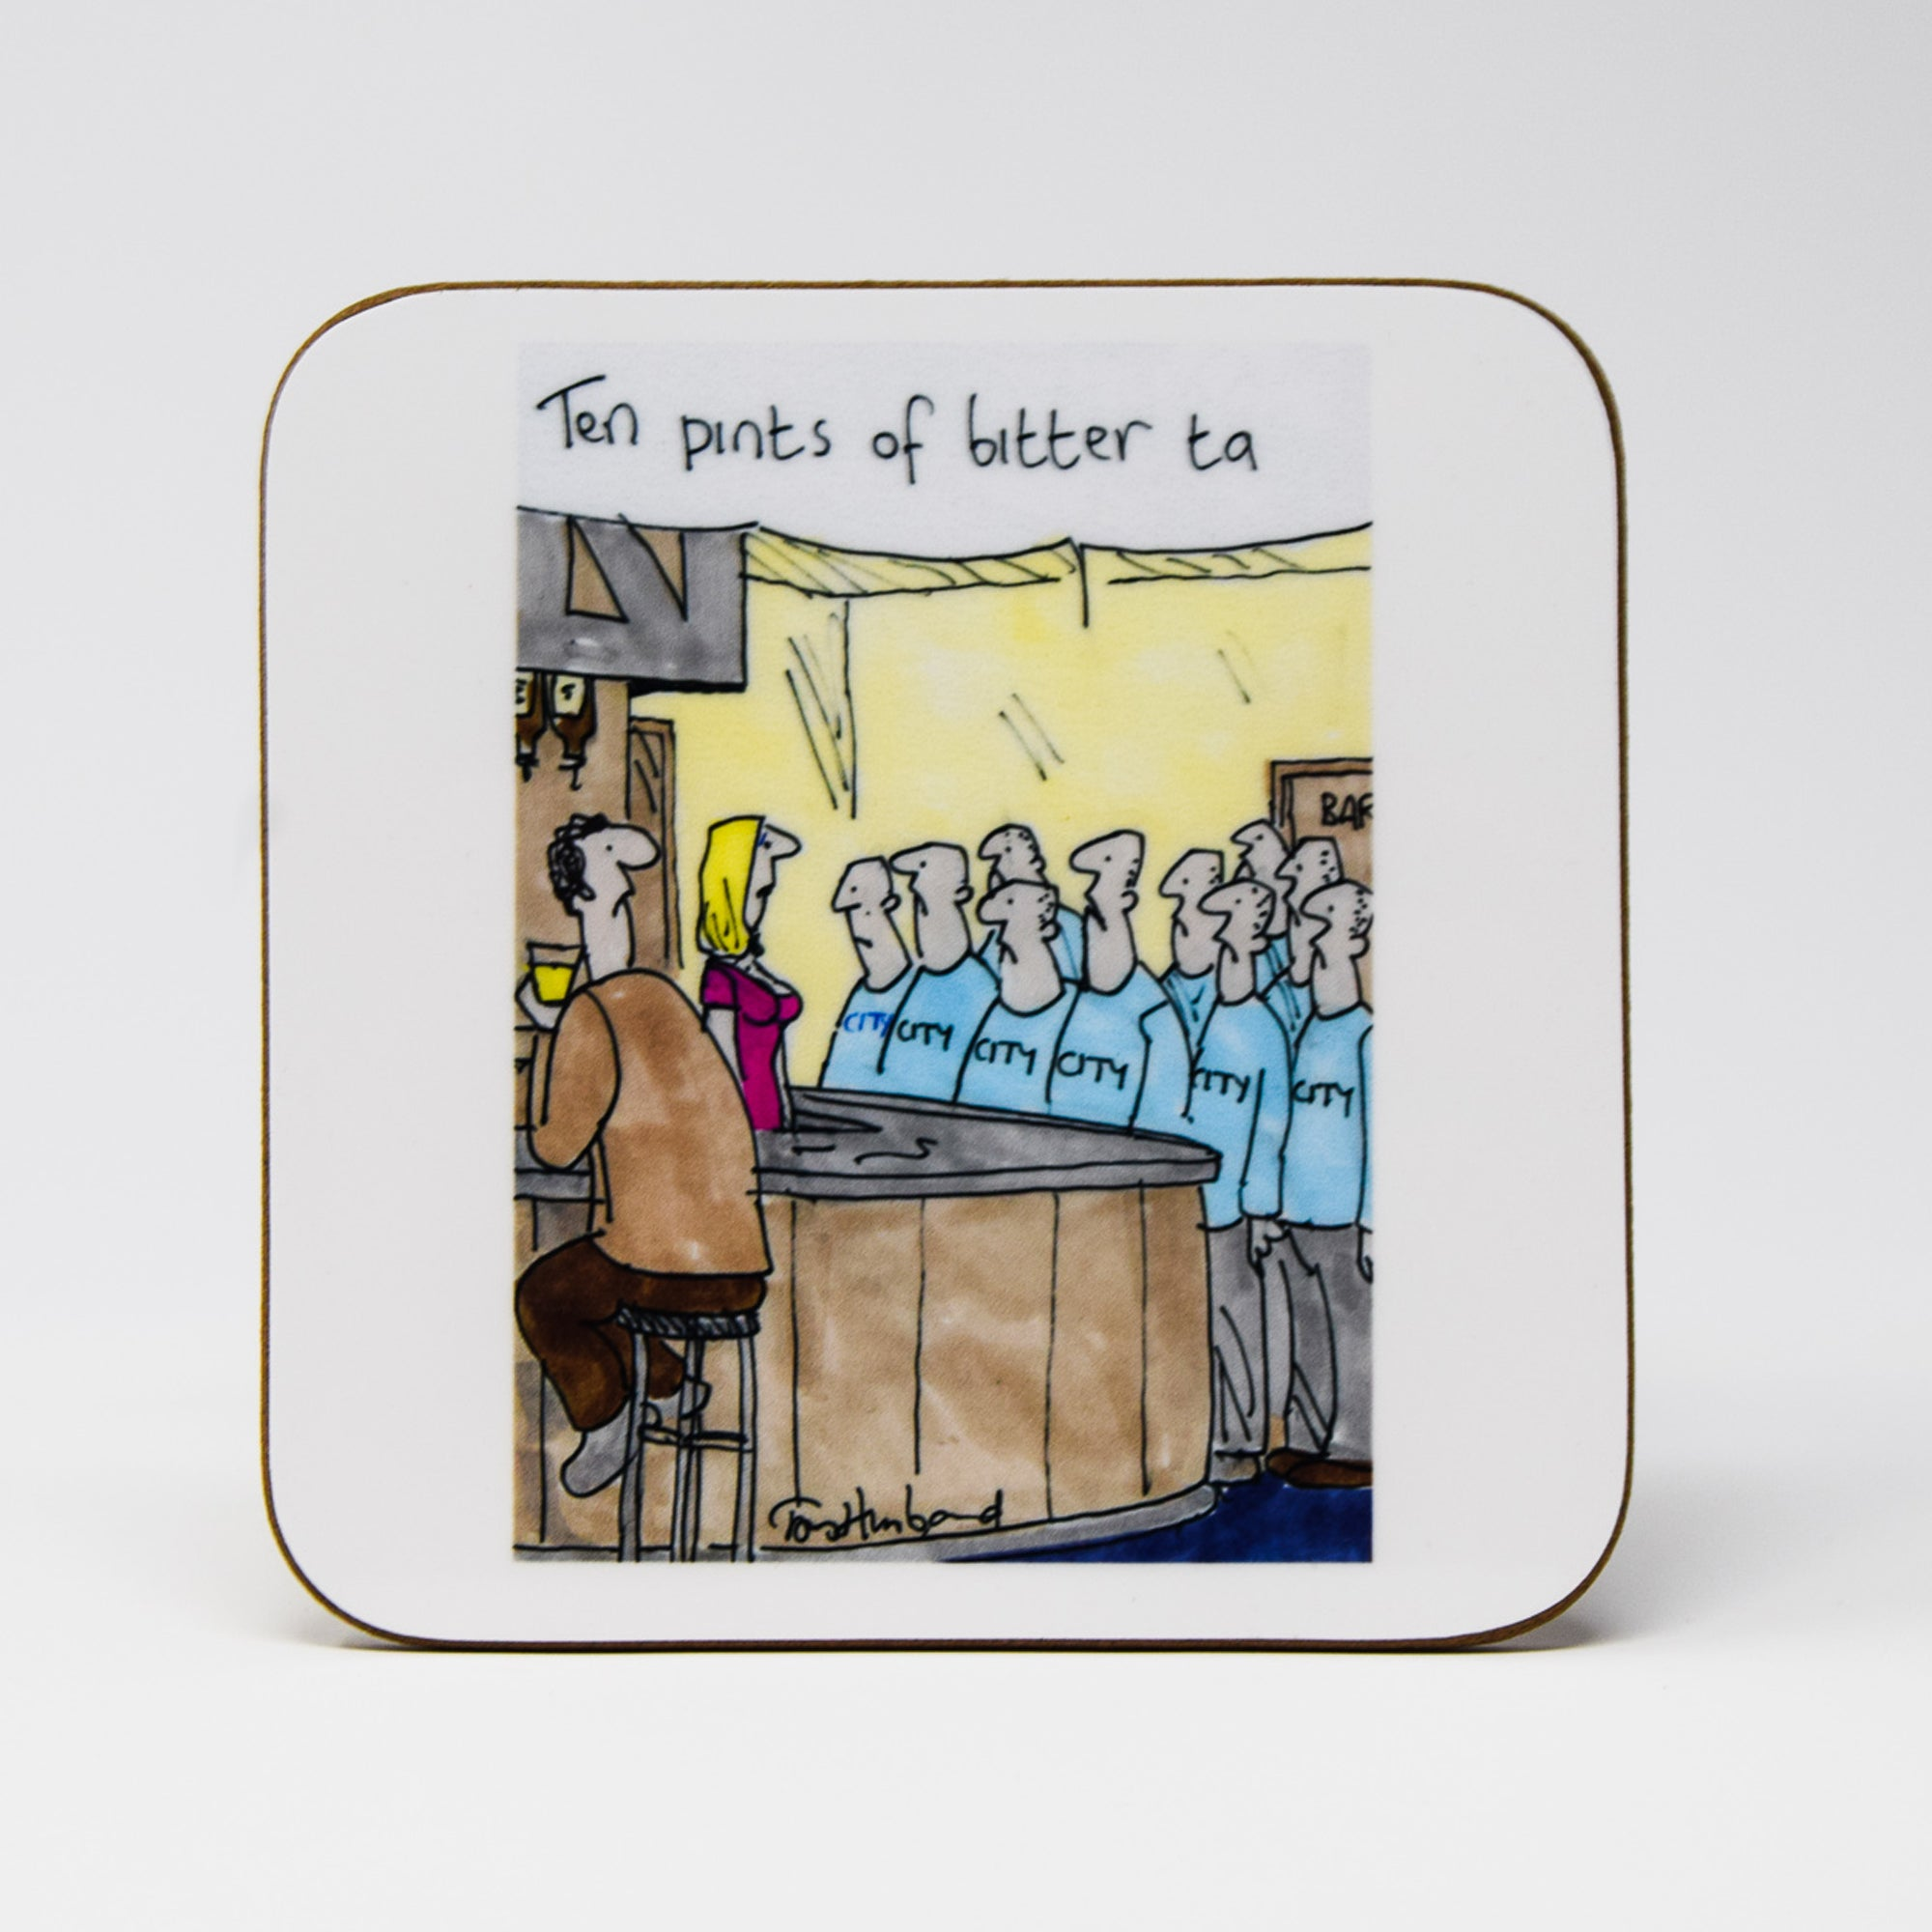 Ten Pints of Bitter Coaster by Tony Husband